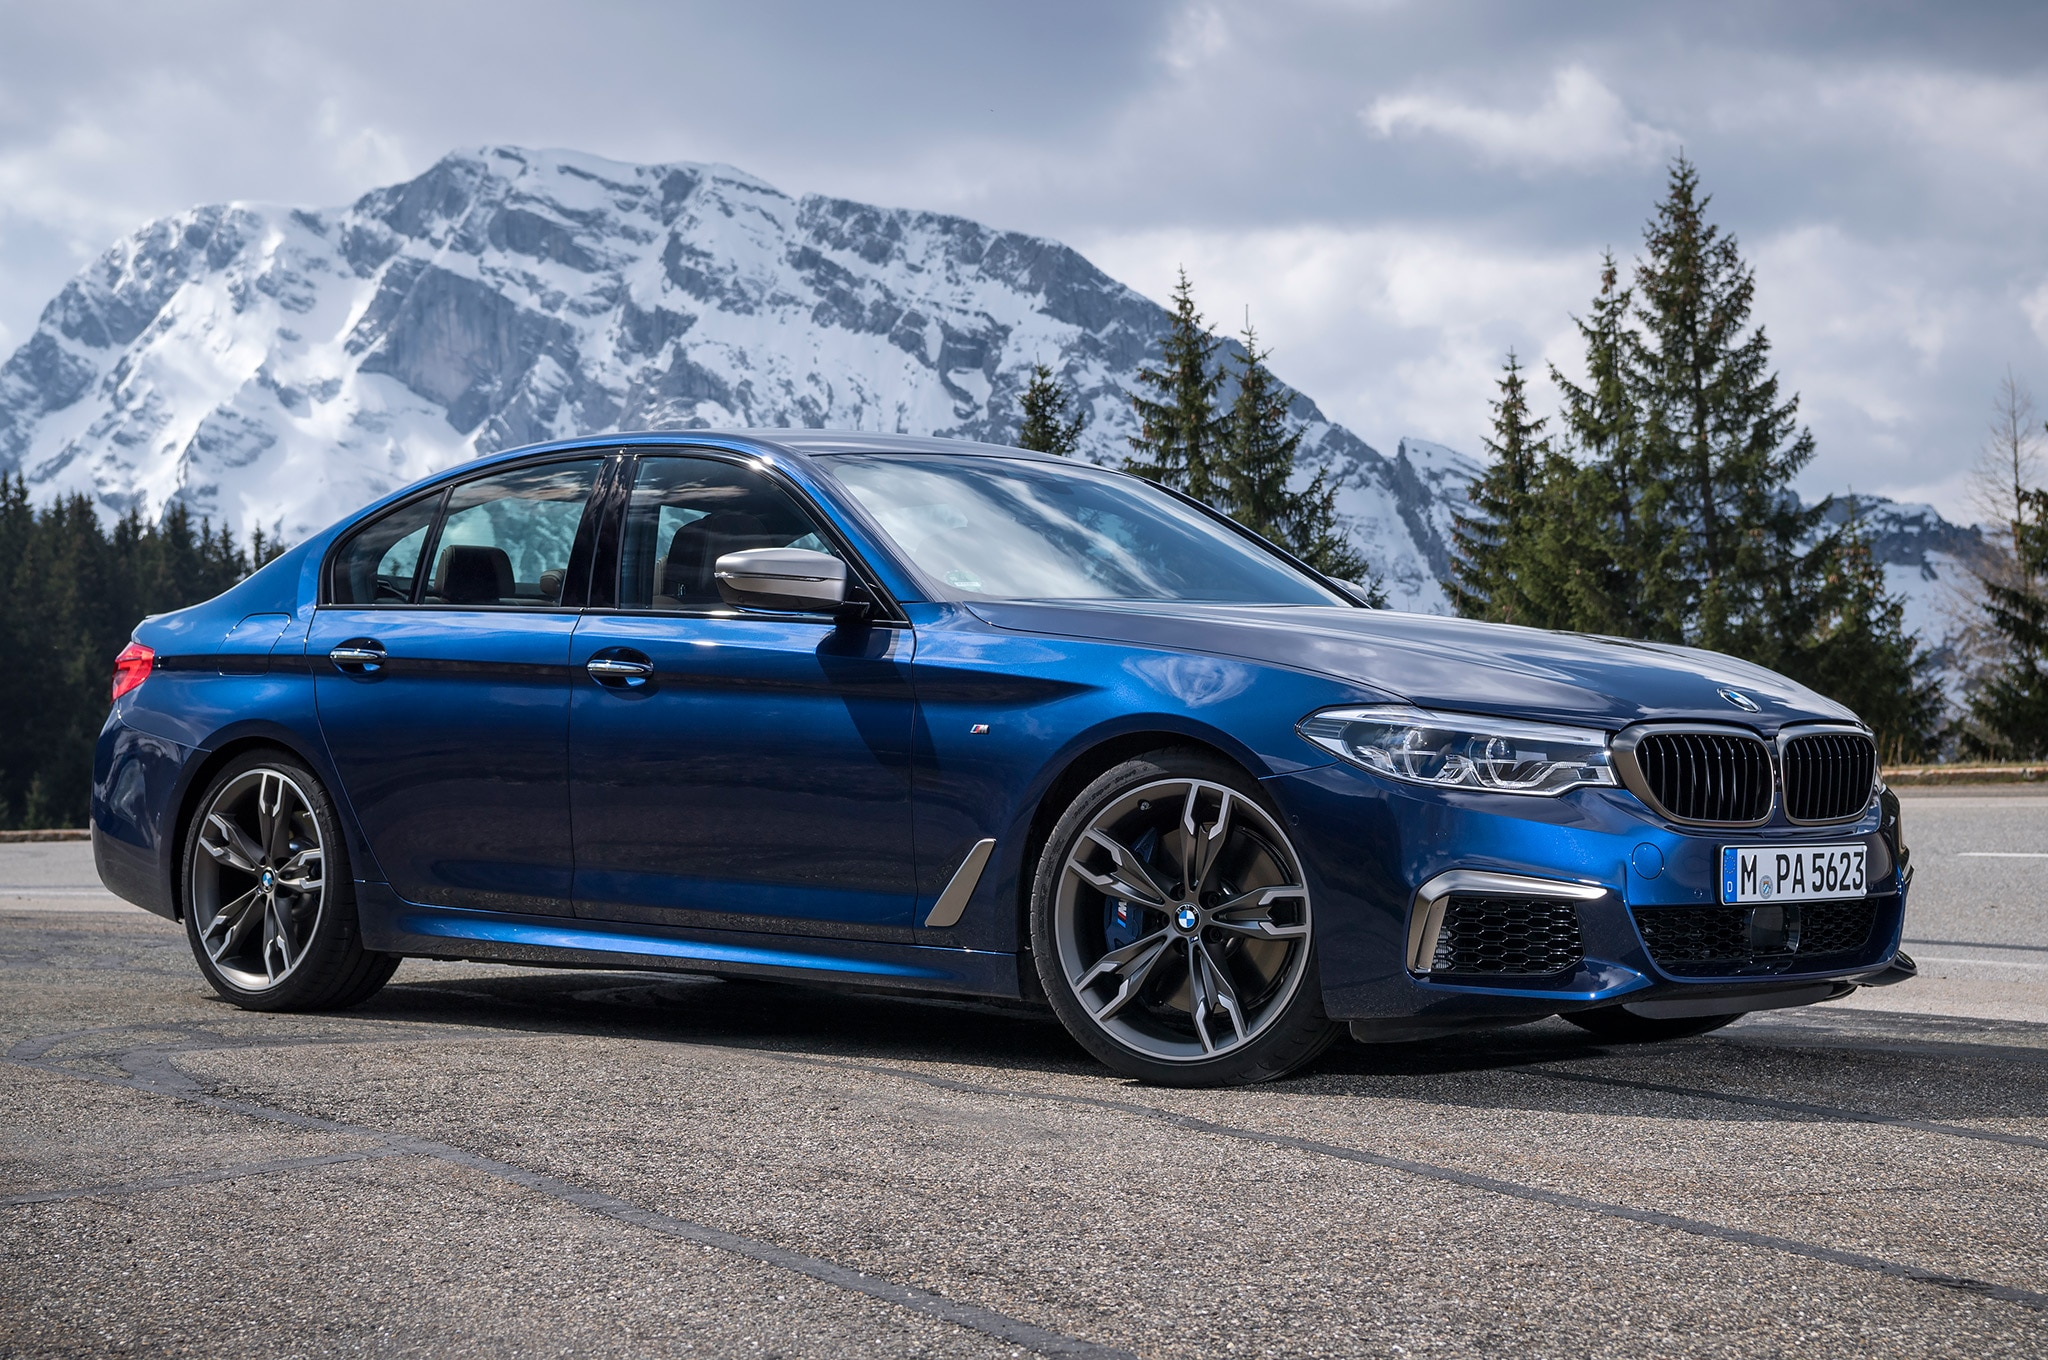 2018 Bmw M550i Xdrive Review >> 2018 BMW M550i xDrive First Drive Review | Automobile Magazine